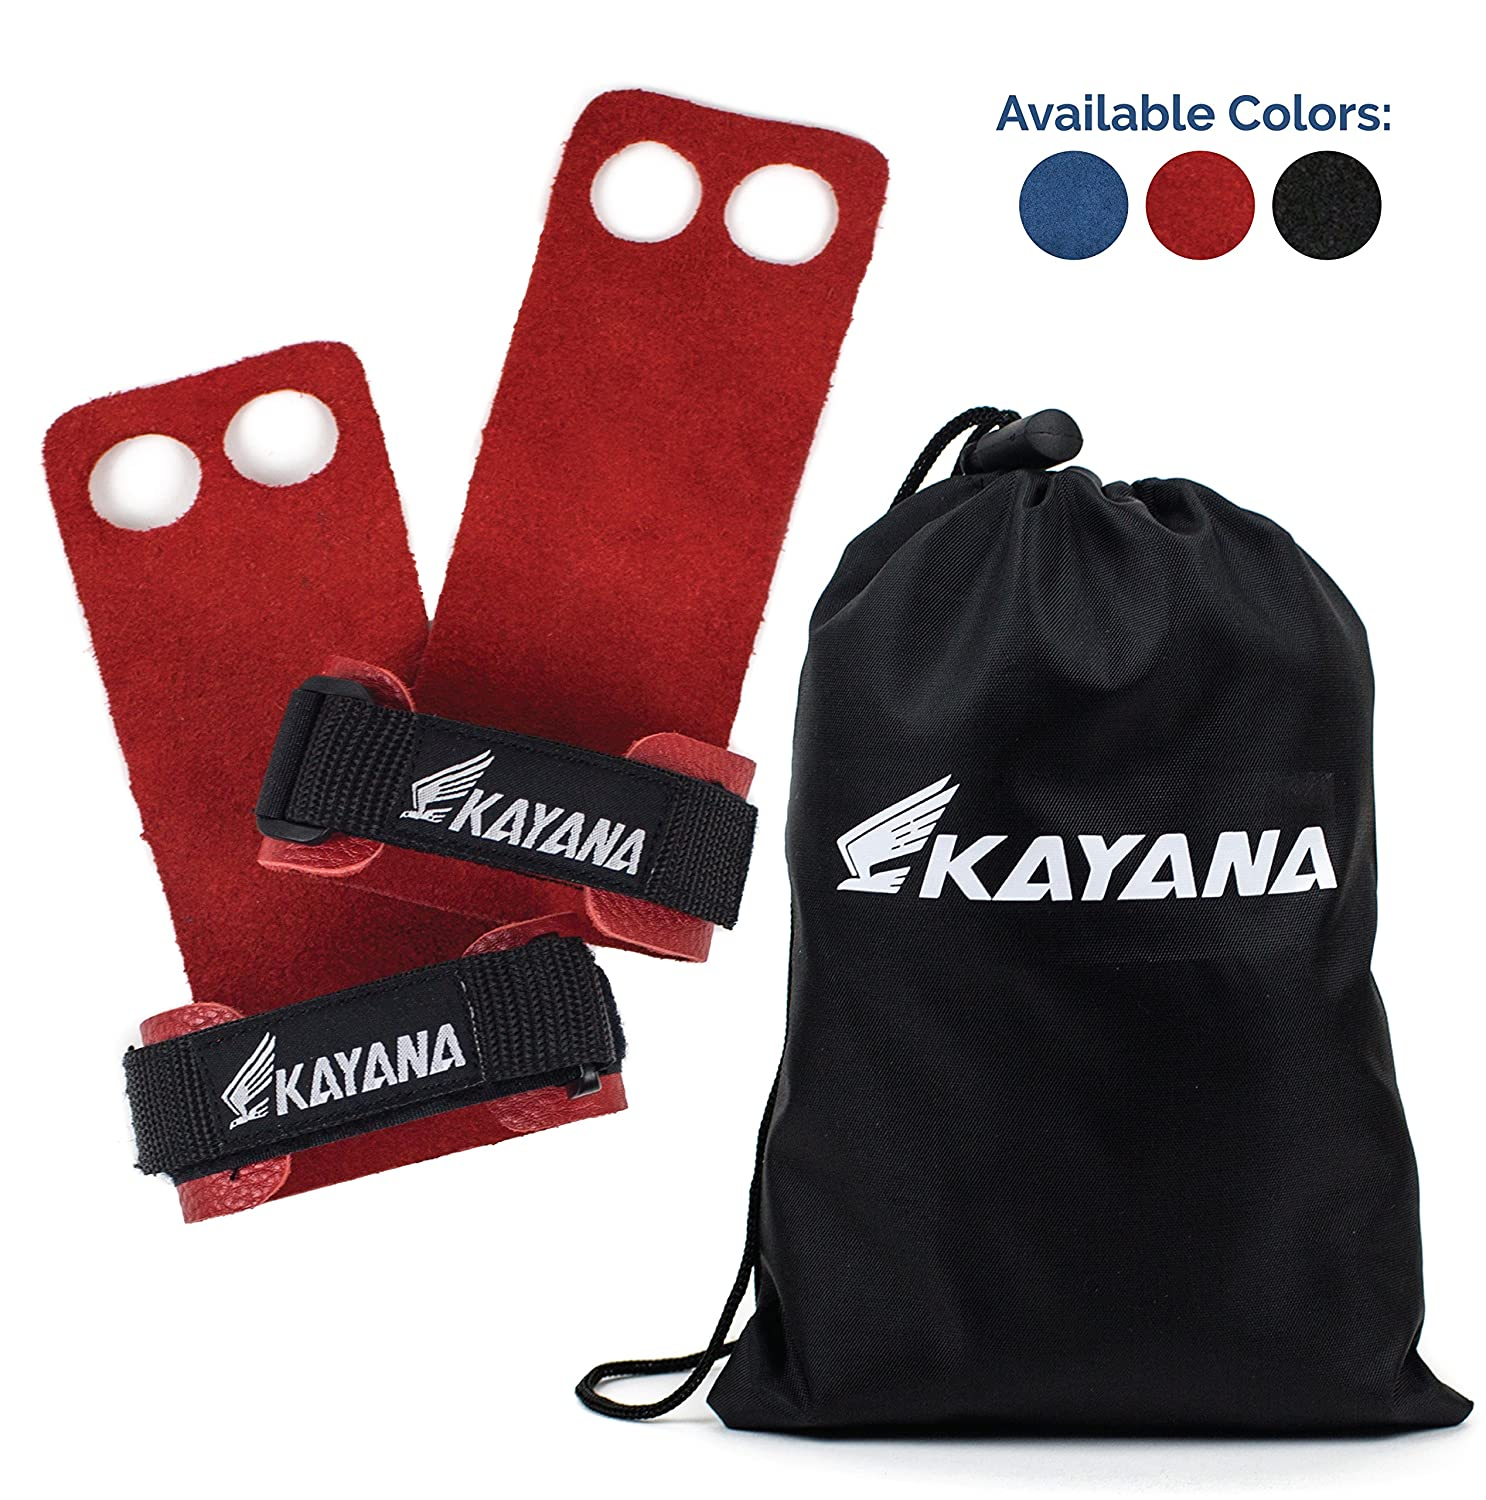 Leather Gymnastics Hand Grips